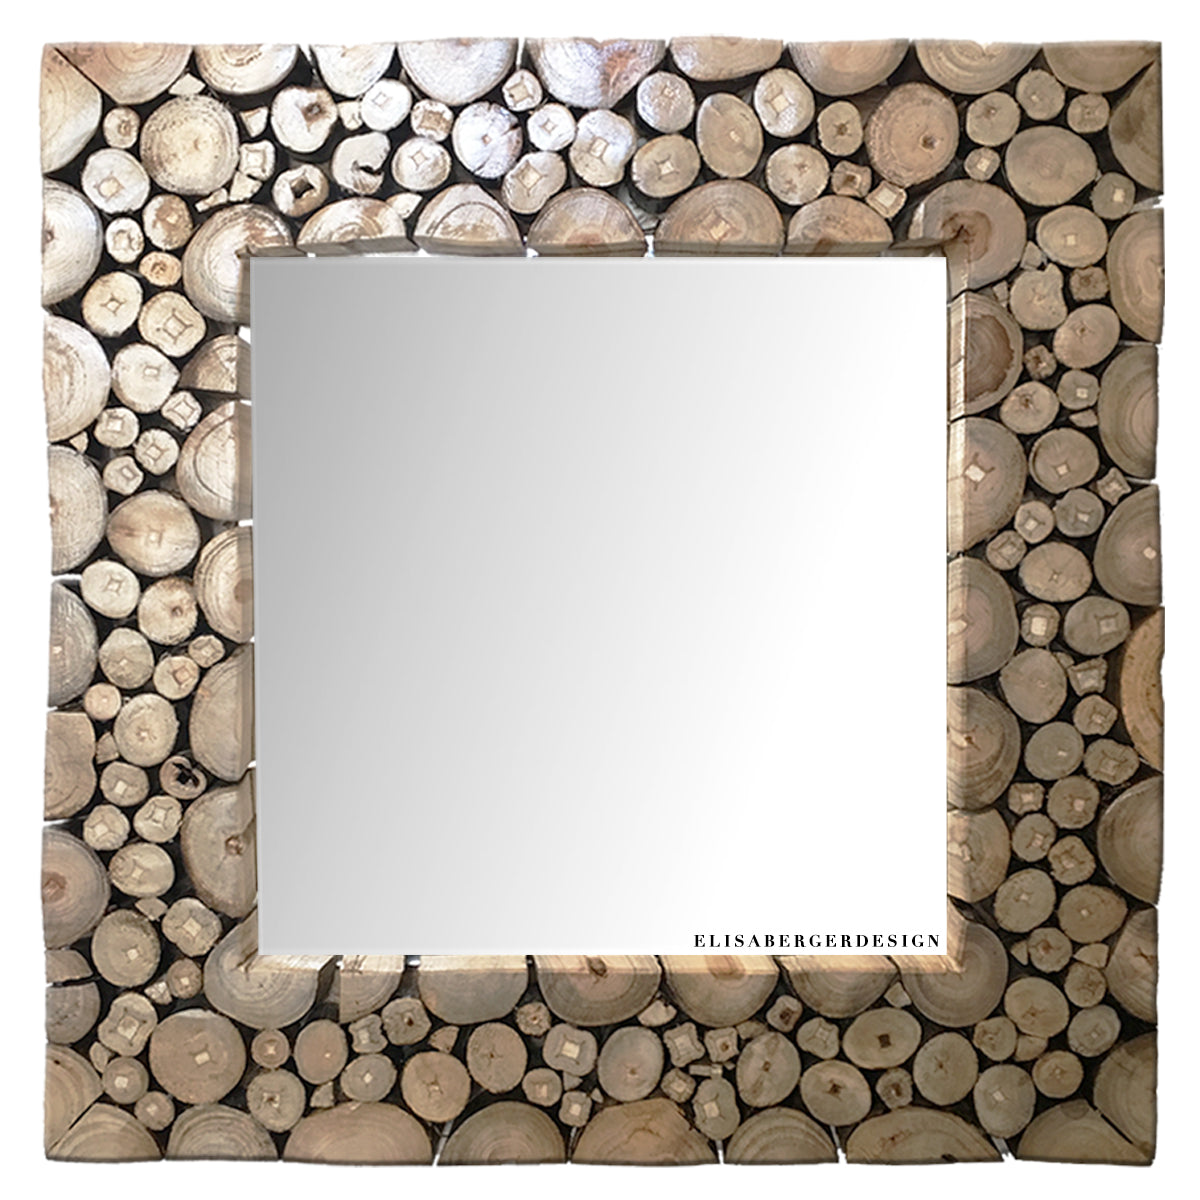 SPECCHIO 'Woody' is a squared mirror 50x50 cm. The design frame is realized with little wood logs, the surface is polished and lacquered. Also the support is made with wood, so this art peace is completely ecological. The Mirror suites good in every kind of space.   LIMITED EDITION - 1 PEACE ONLY  Delivery time : 10 days Shipping costs : free in Europe (for worldwide orders write to : elisabergerdesign@gmail.com)